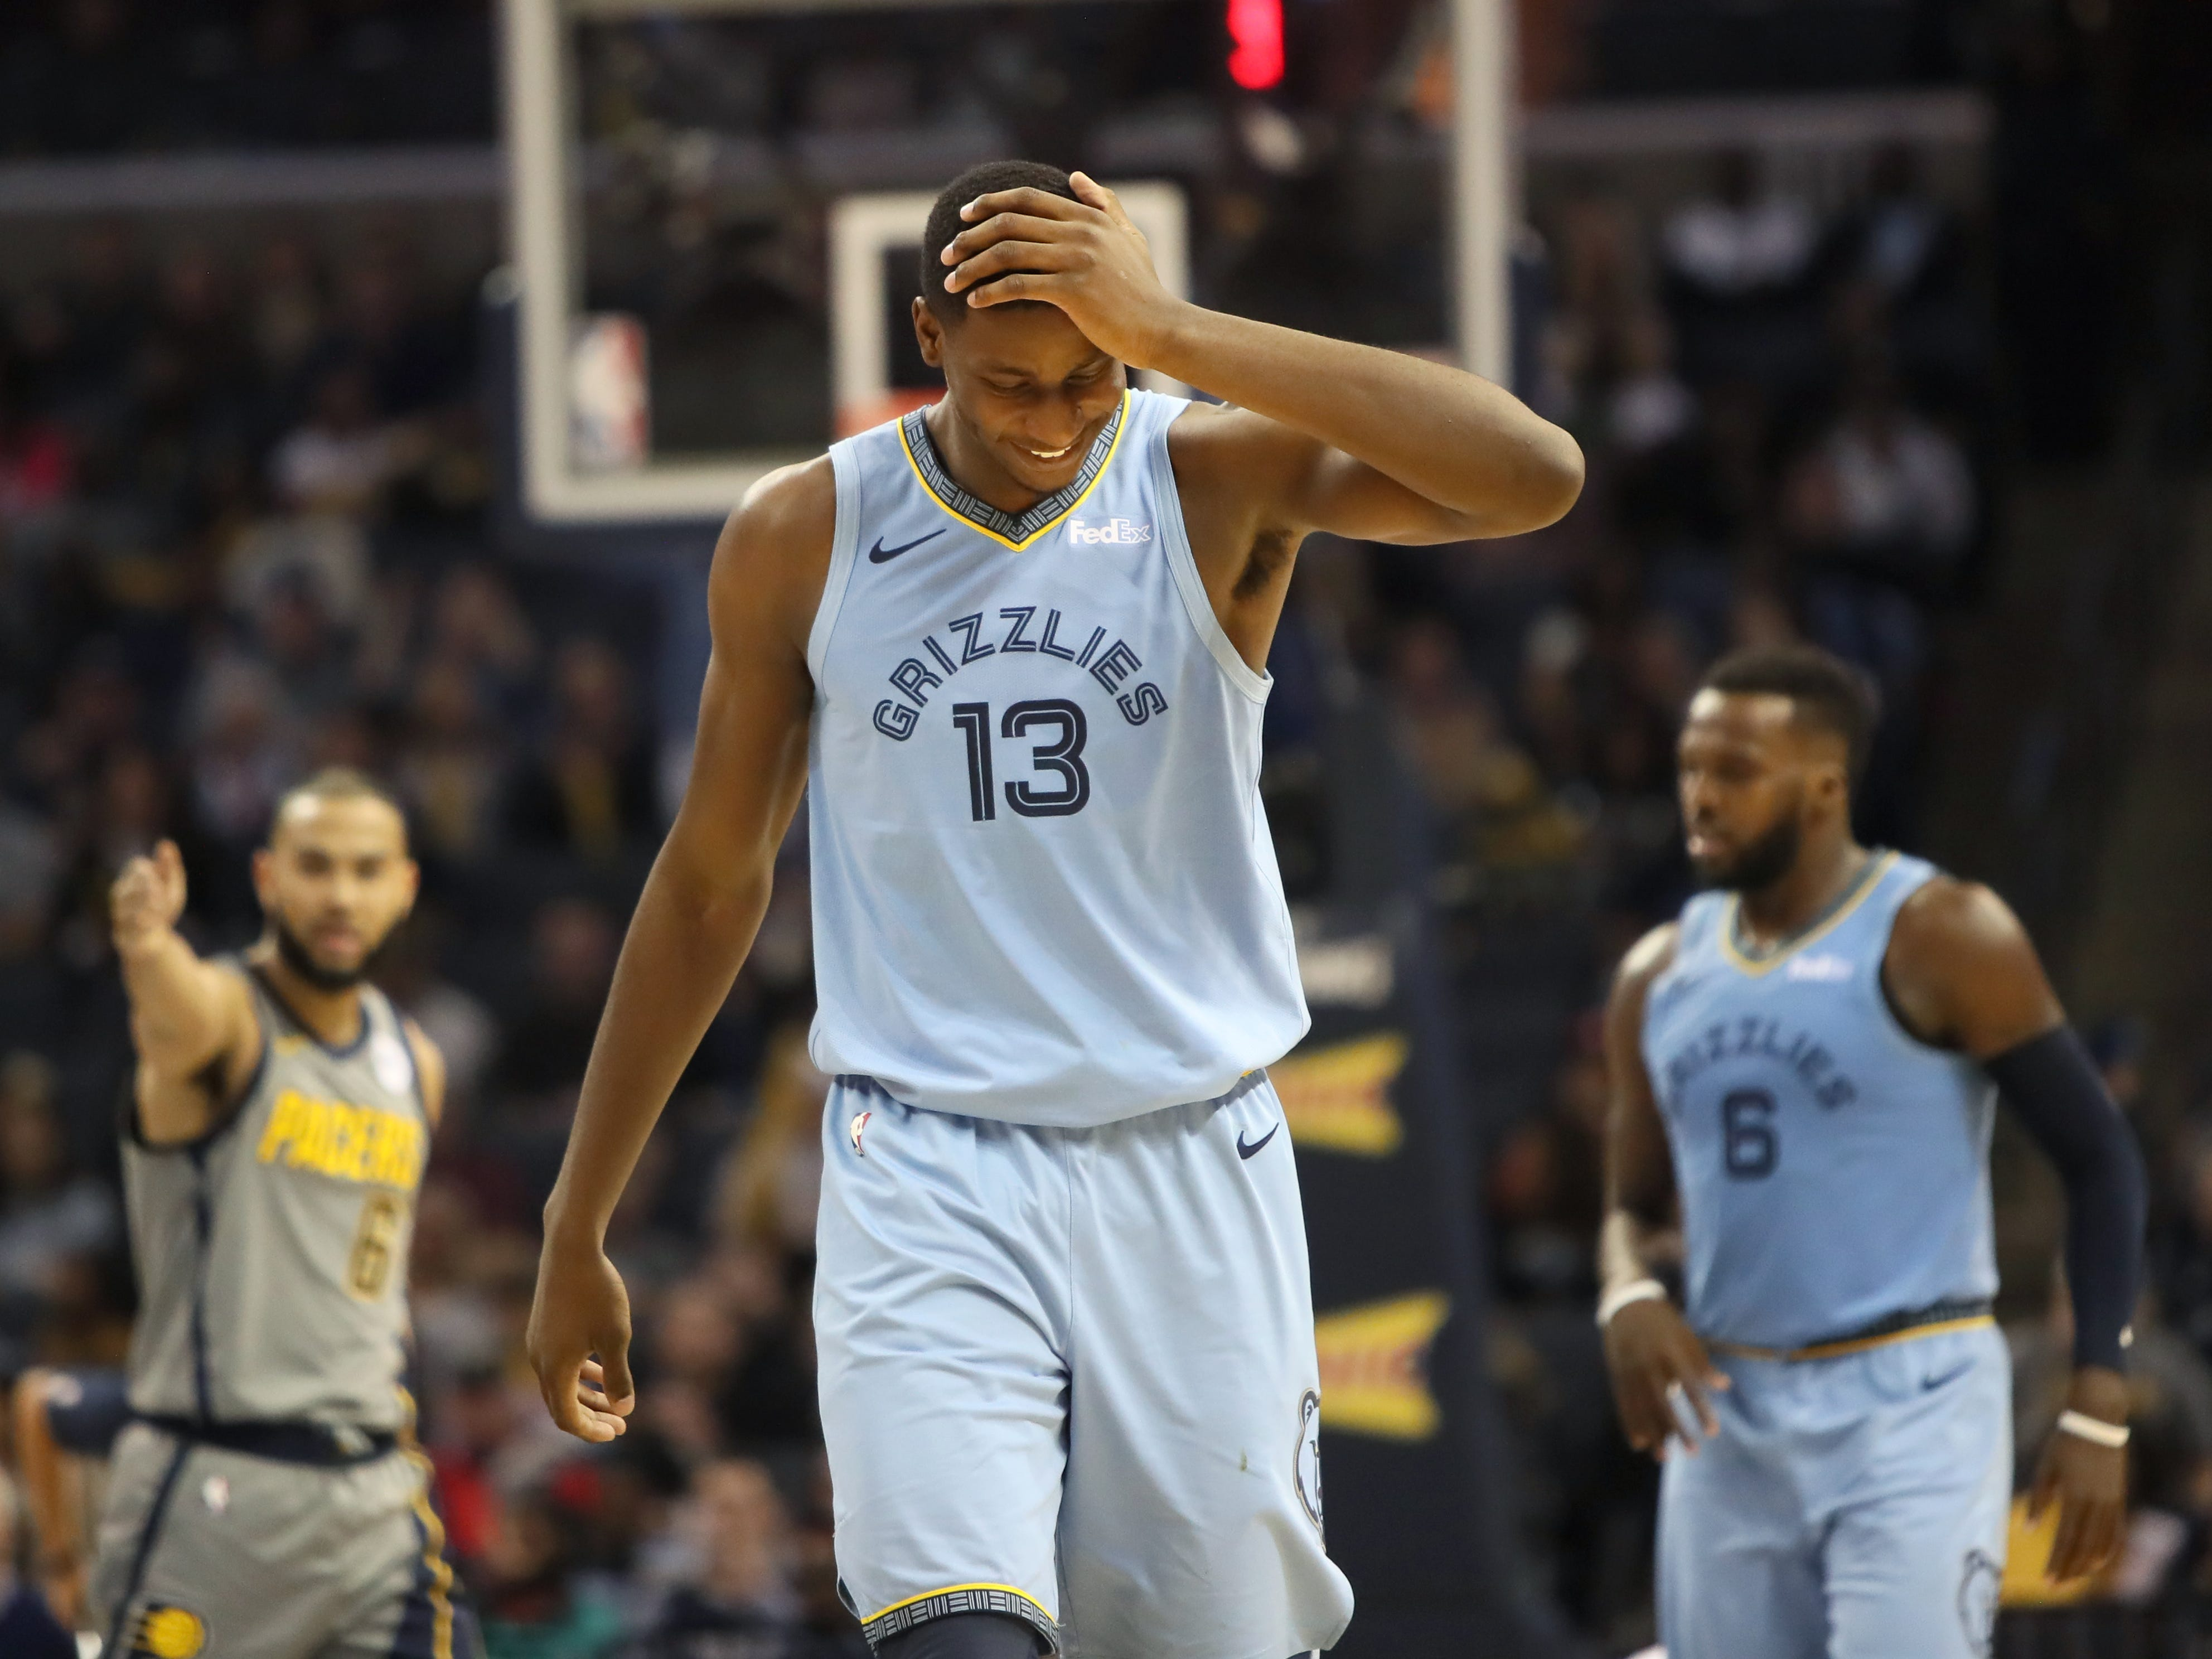 Memphis Grizzlies forward Jaren Jackson Jr. shakes his head in disbelief after being called for a foul against the Indiana Pacers during their game at the FedExForum on Saturday, Jan. 26, 2019.